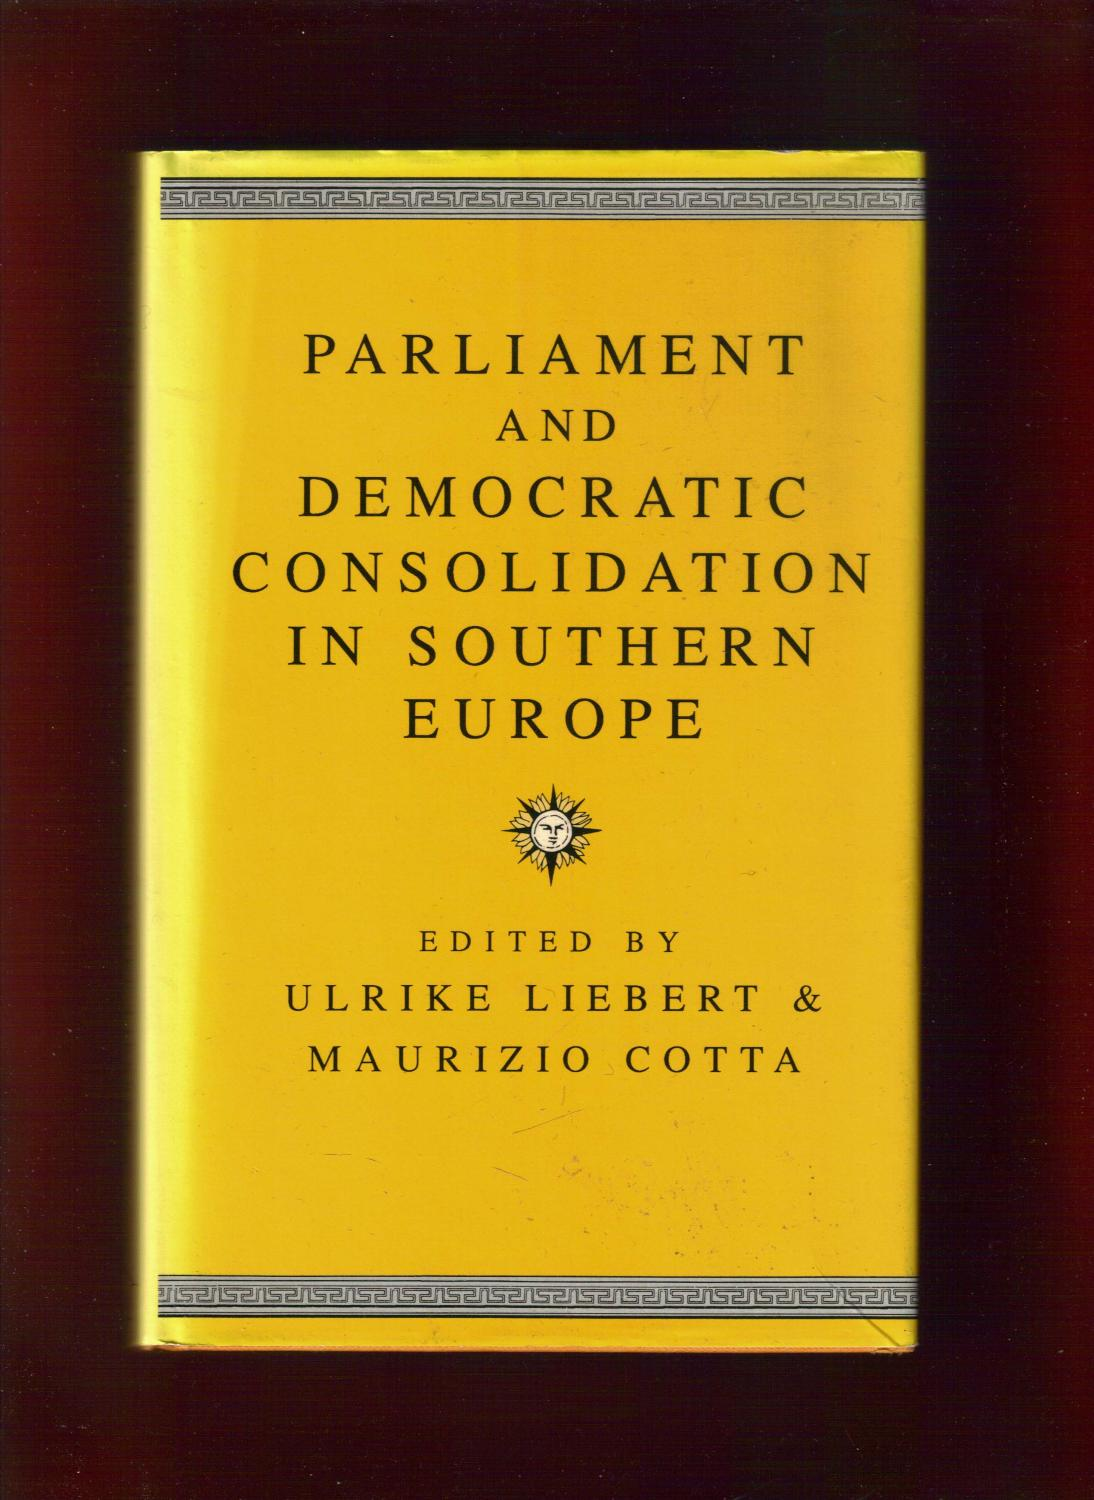 Parliament and Democratic Consolidation in Southern Europe - Liebert, Ulrike and Cotta, Maurizio